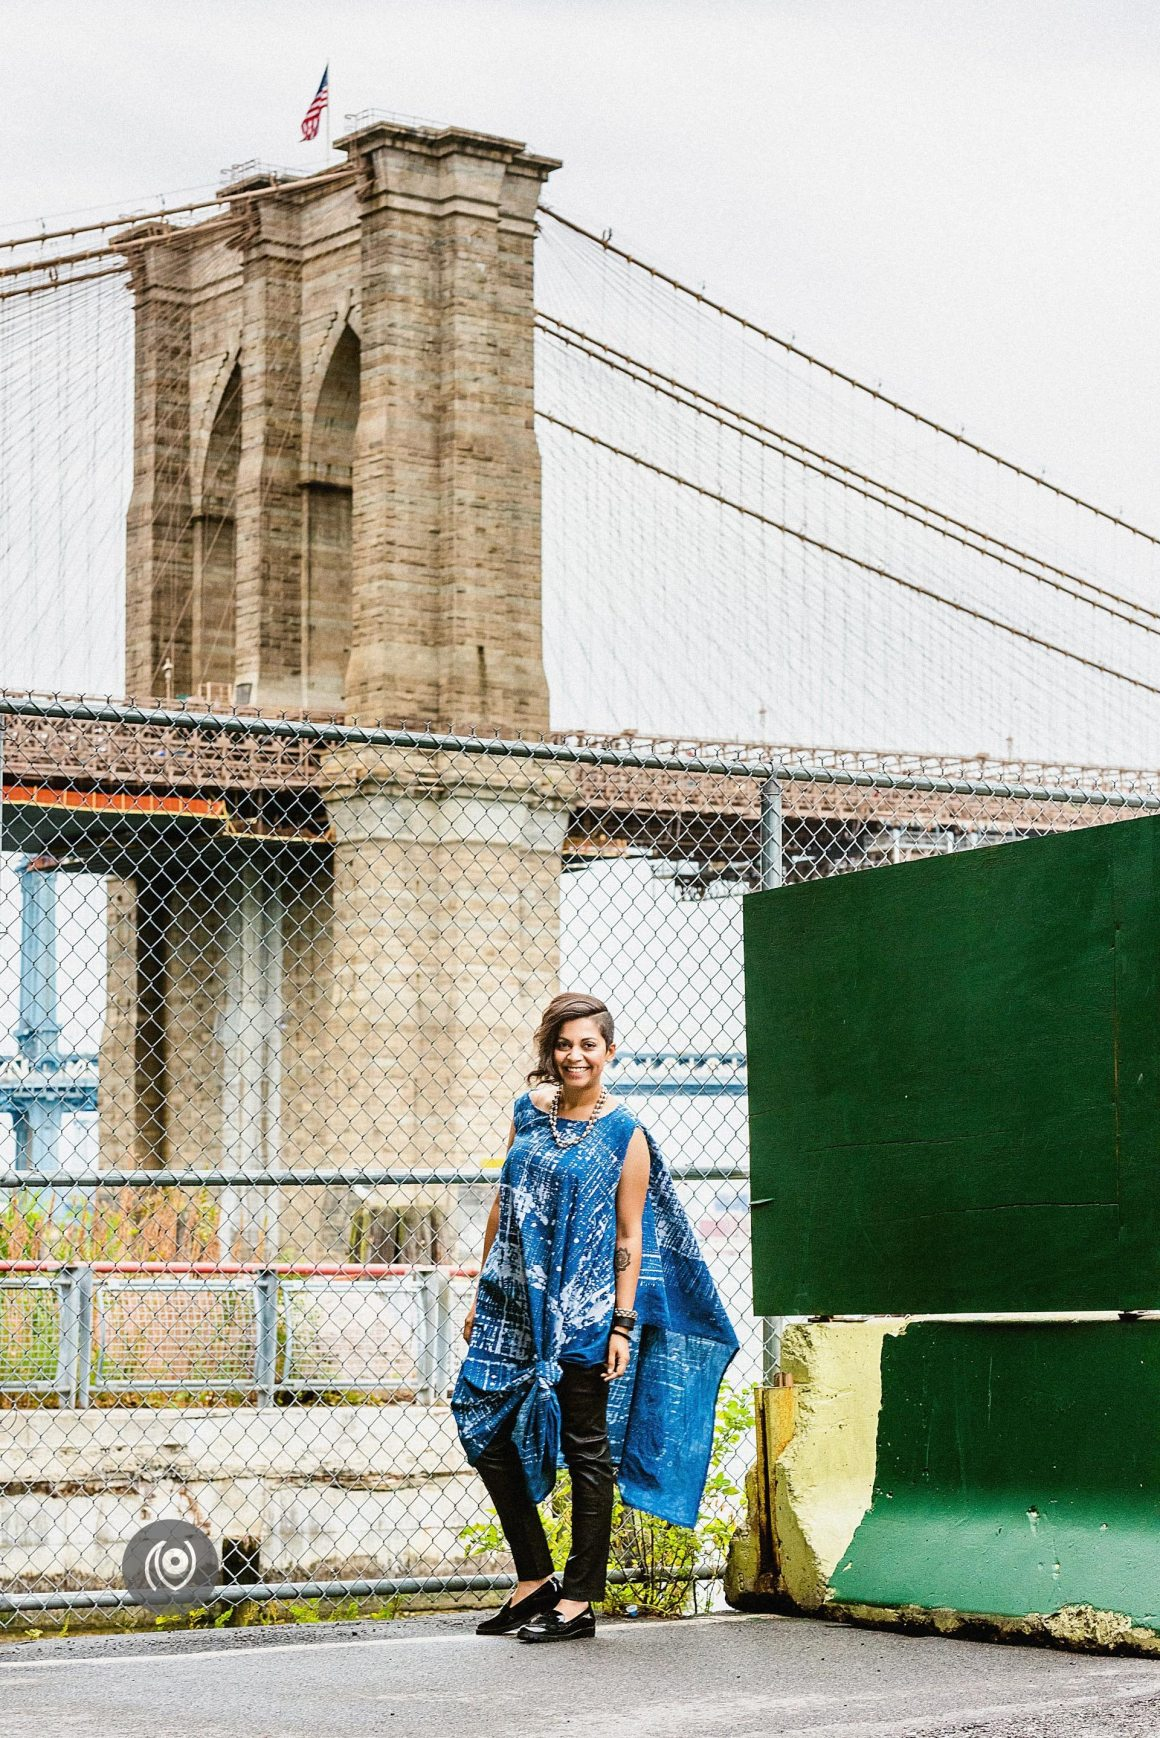 Brooklyn Bridge, Wall Street #CoverUp 53 #EyesForNewYork #REDHUxNYC Naina.co Luxury & Lifestyle, Photographer Storyteller, Blogger